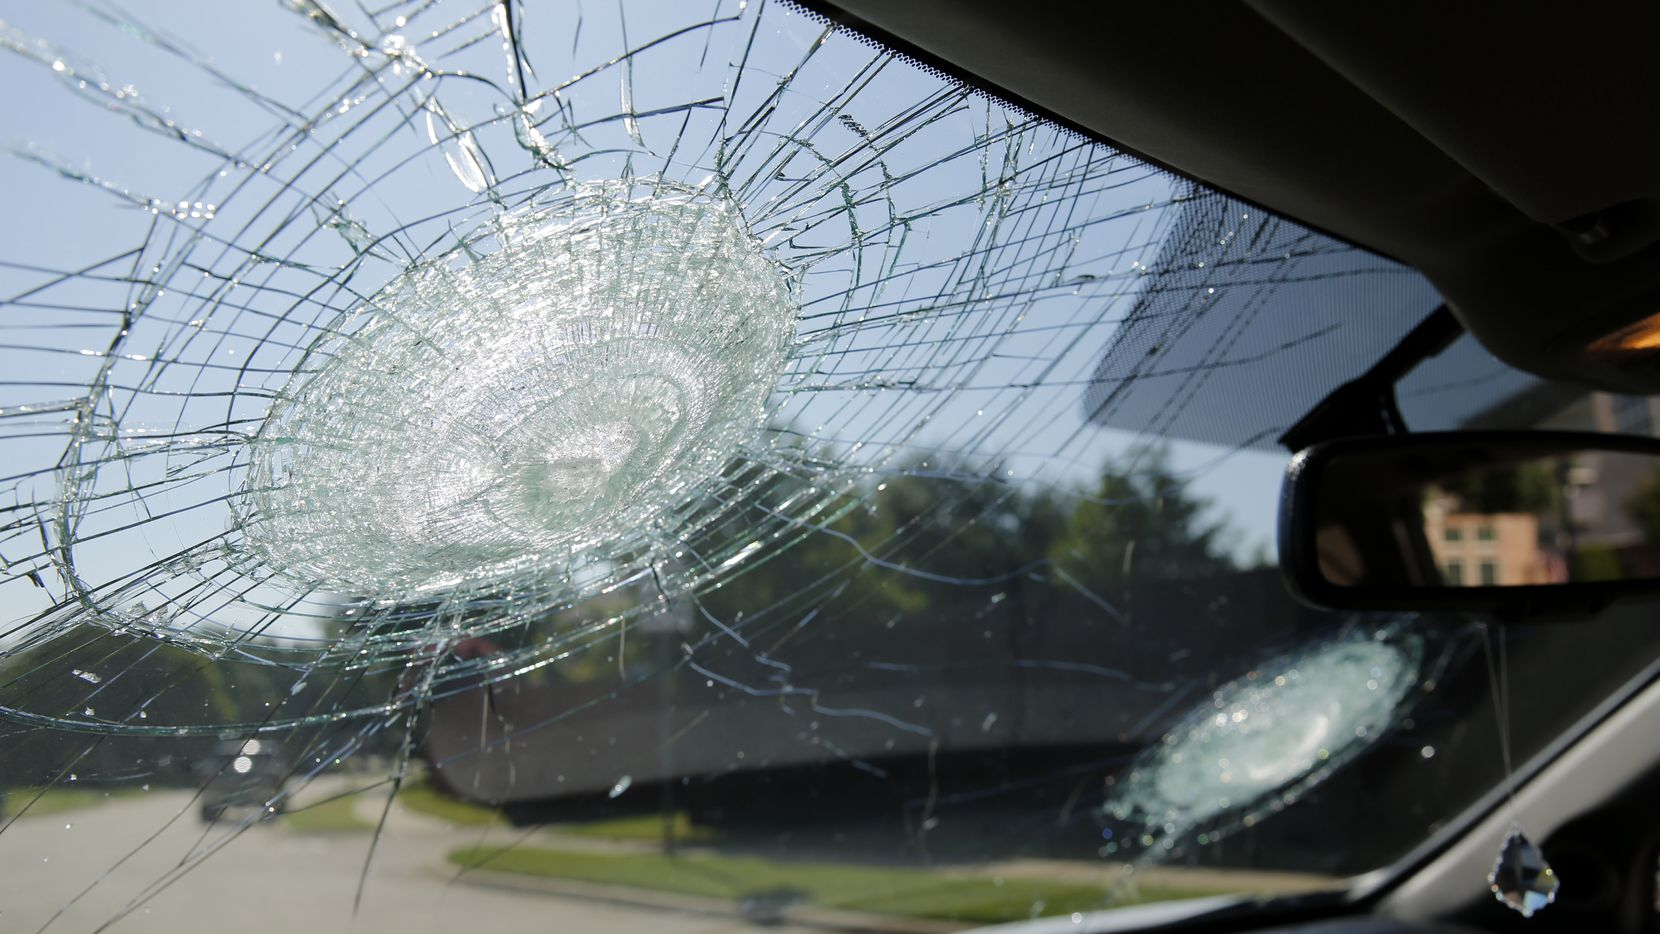 Two large indentations caused by hail in the windshield of a vehicle in Coppell.